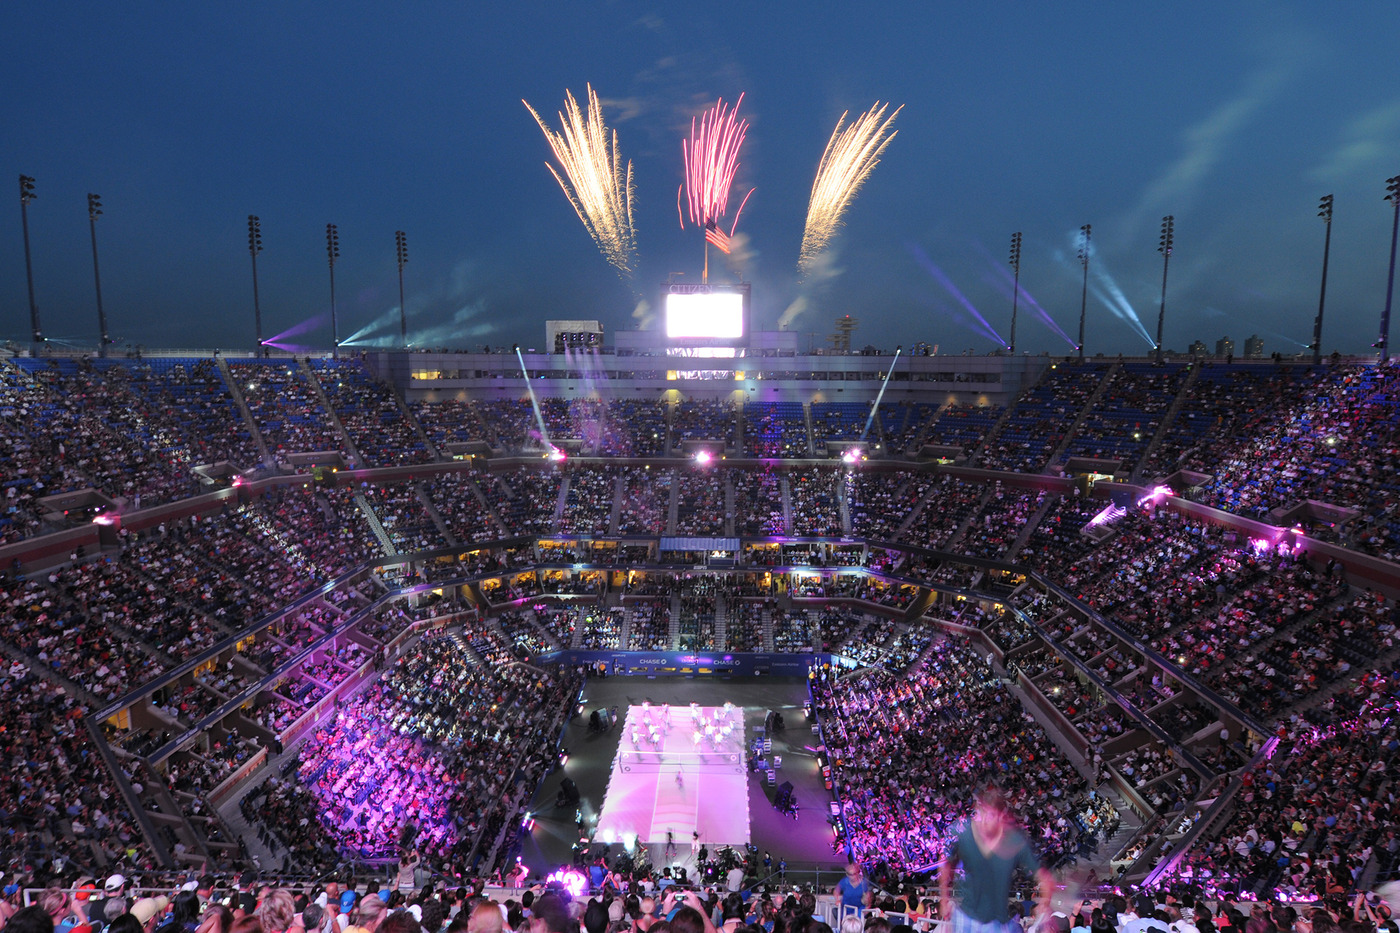 Fireworks go off during the Opening Night ceremonies of the 2014 US Open. - Photo Credit: Mike Lawrence/usopen.org